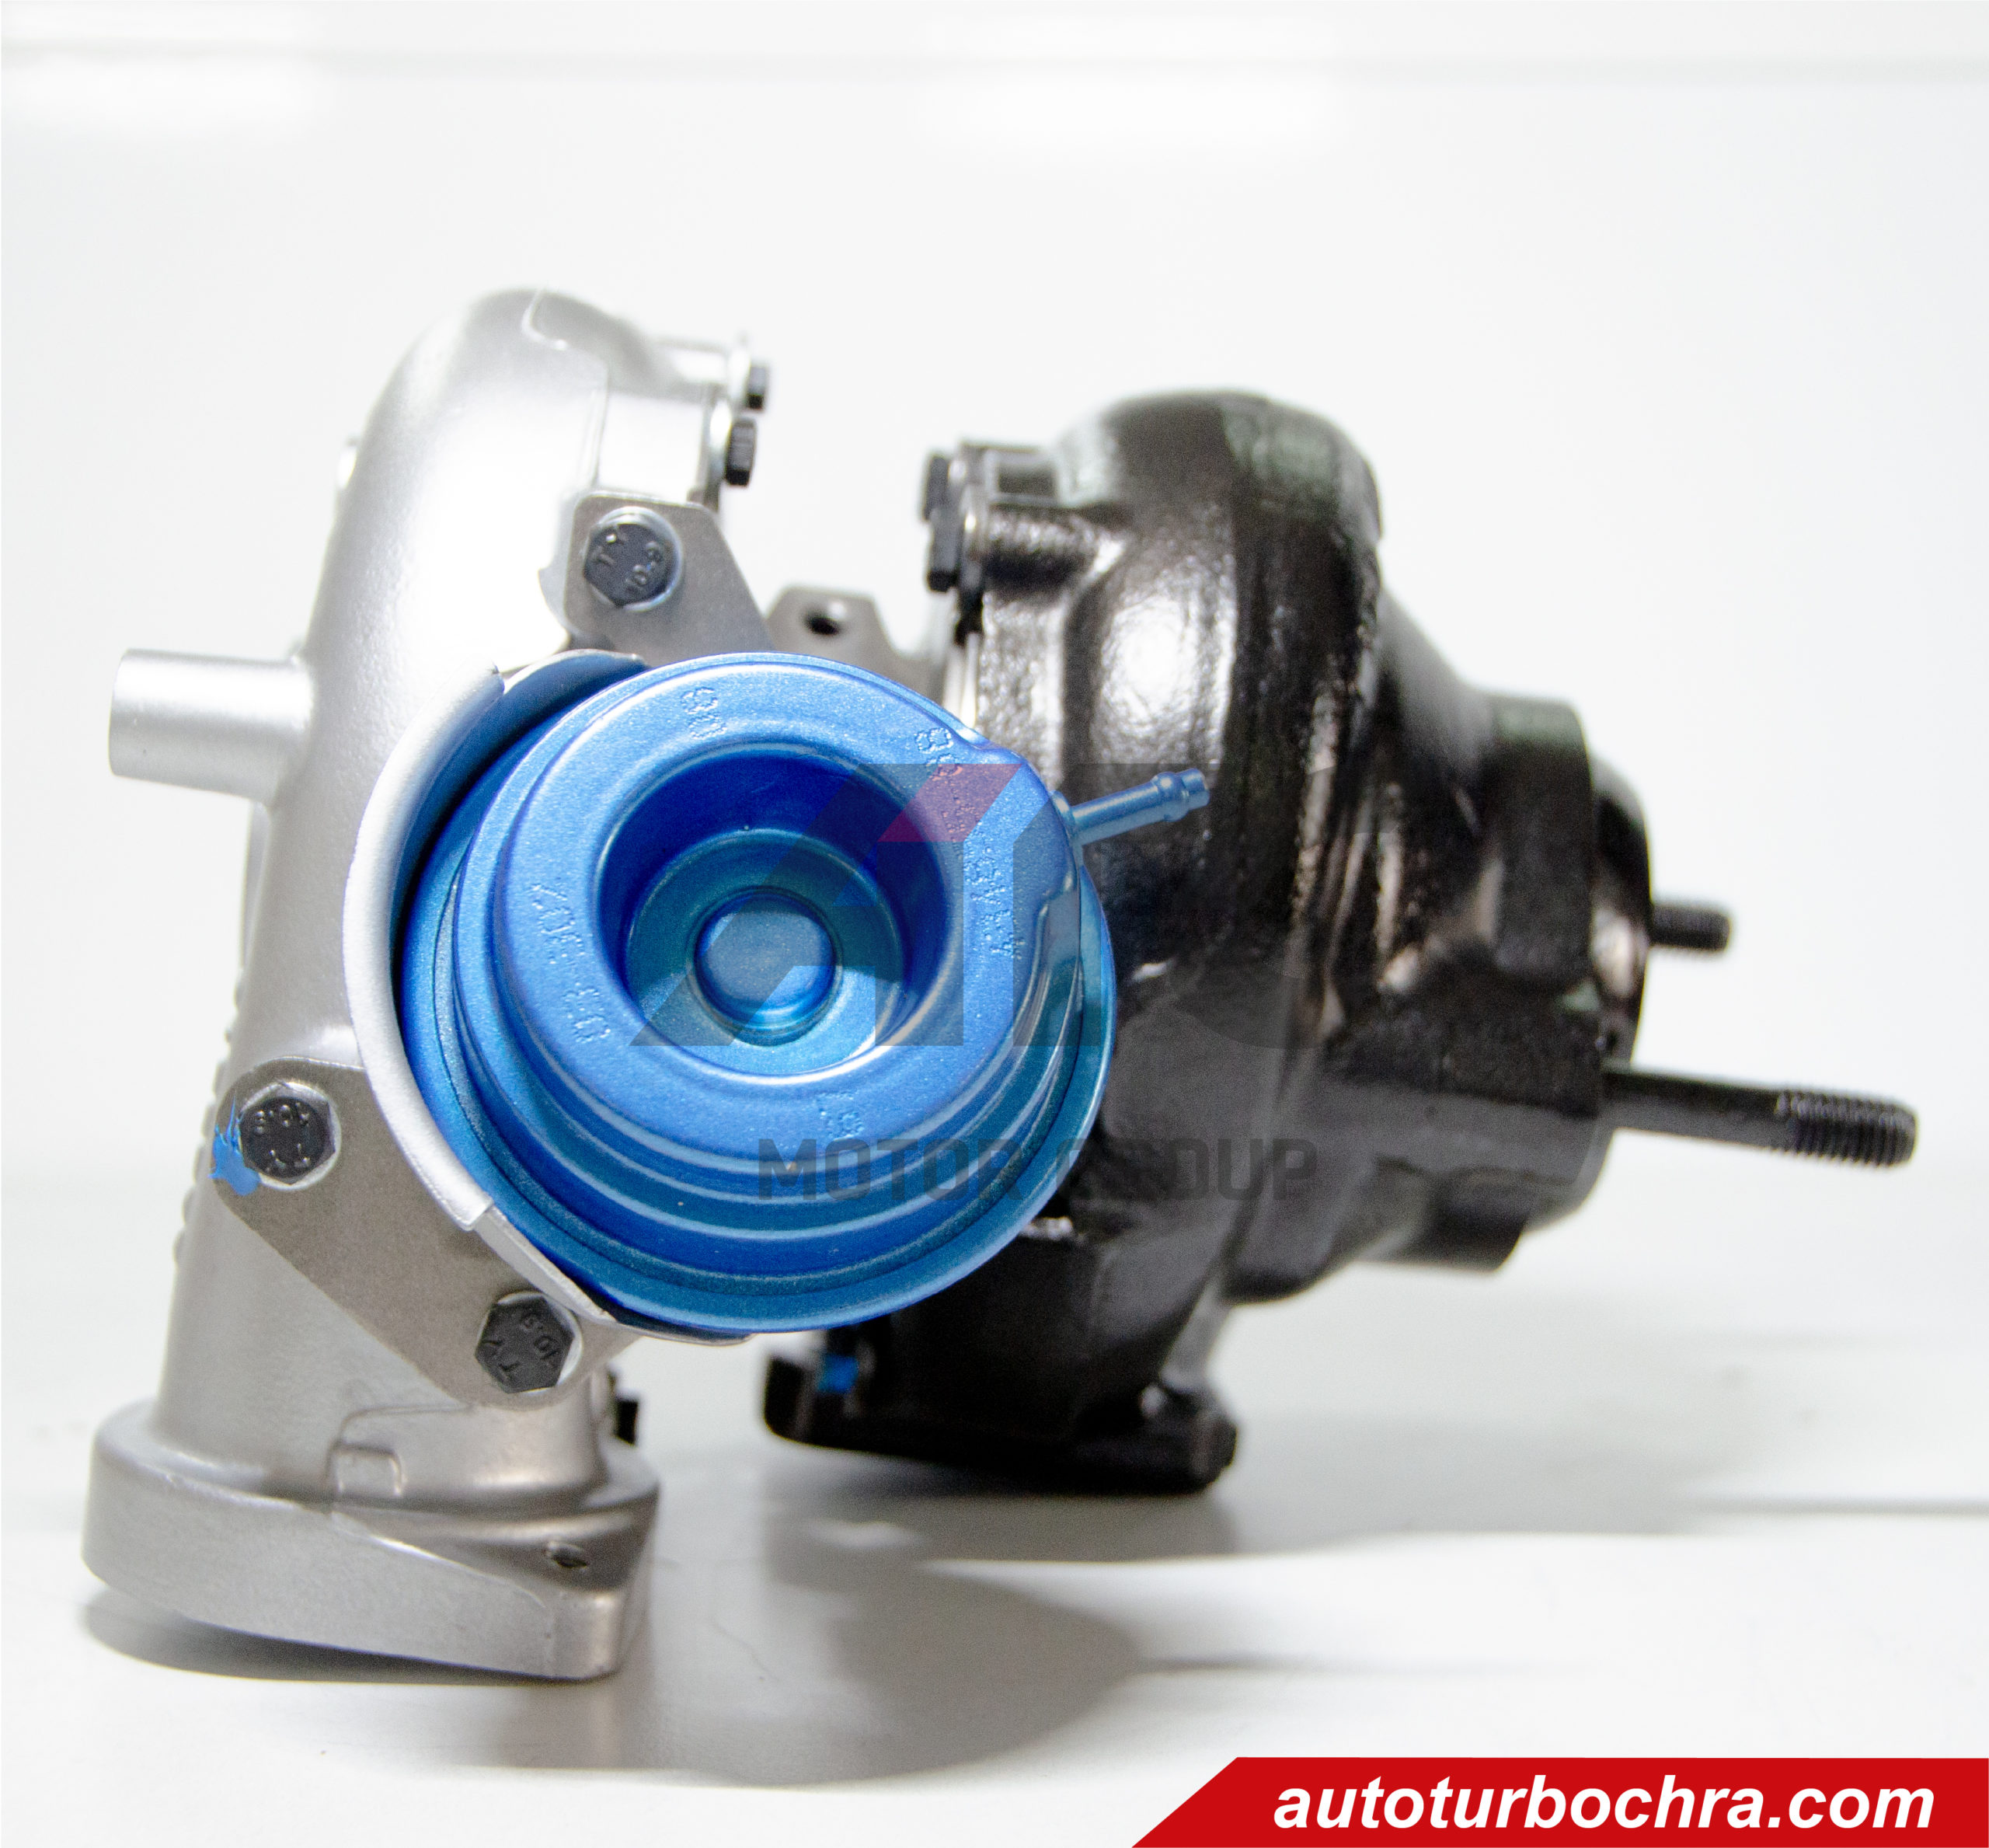 turbo hibrido